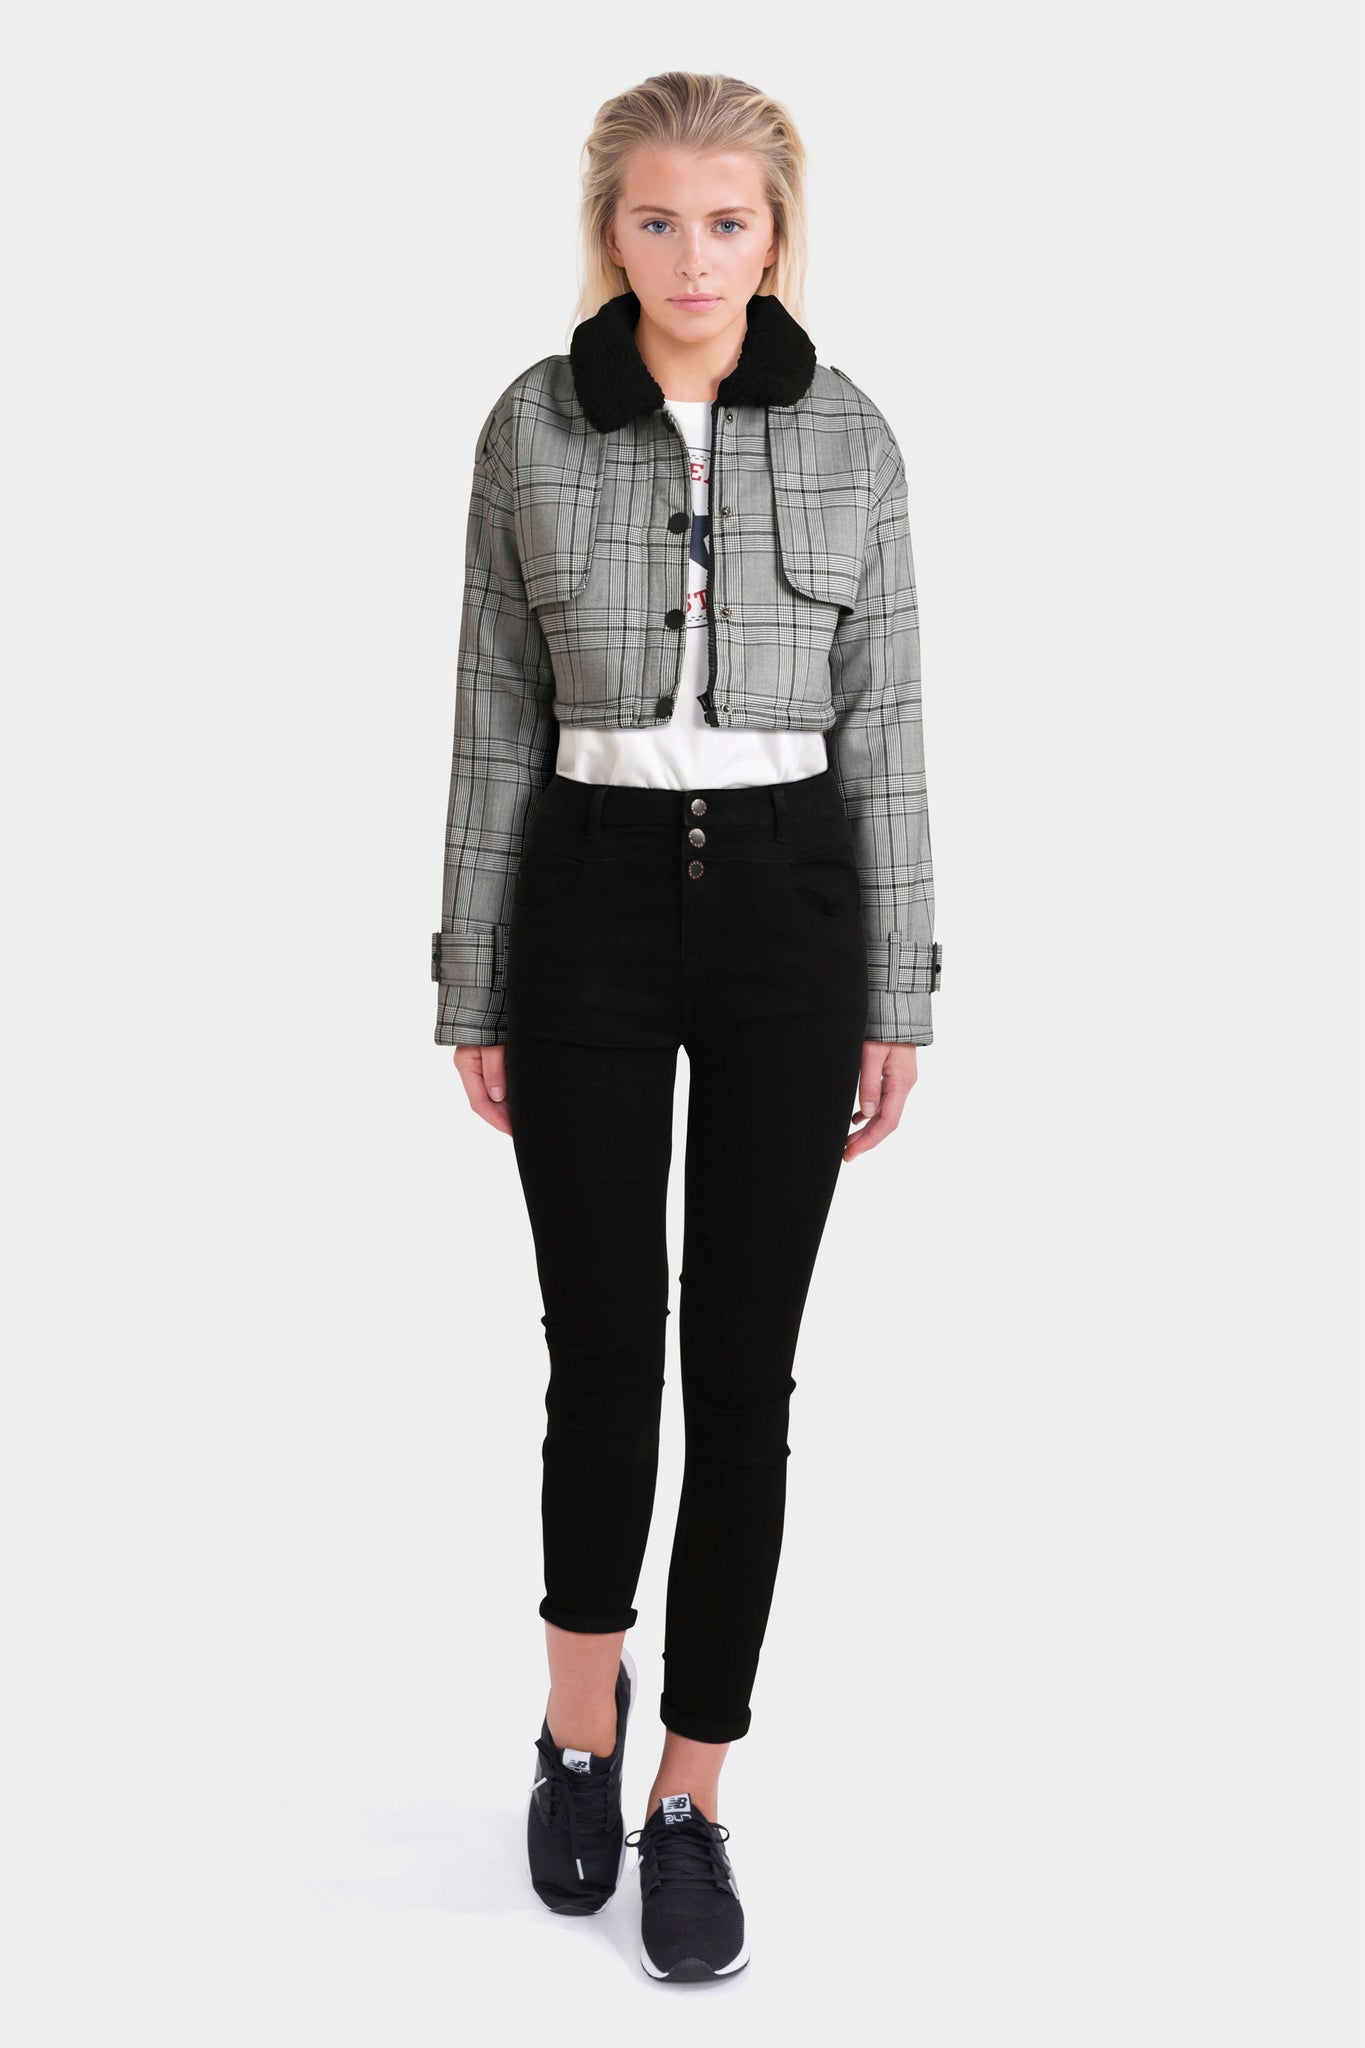 High Waist Skinny Jeans Converse T-Shirt & Checked Jacket